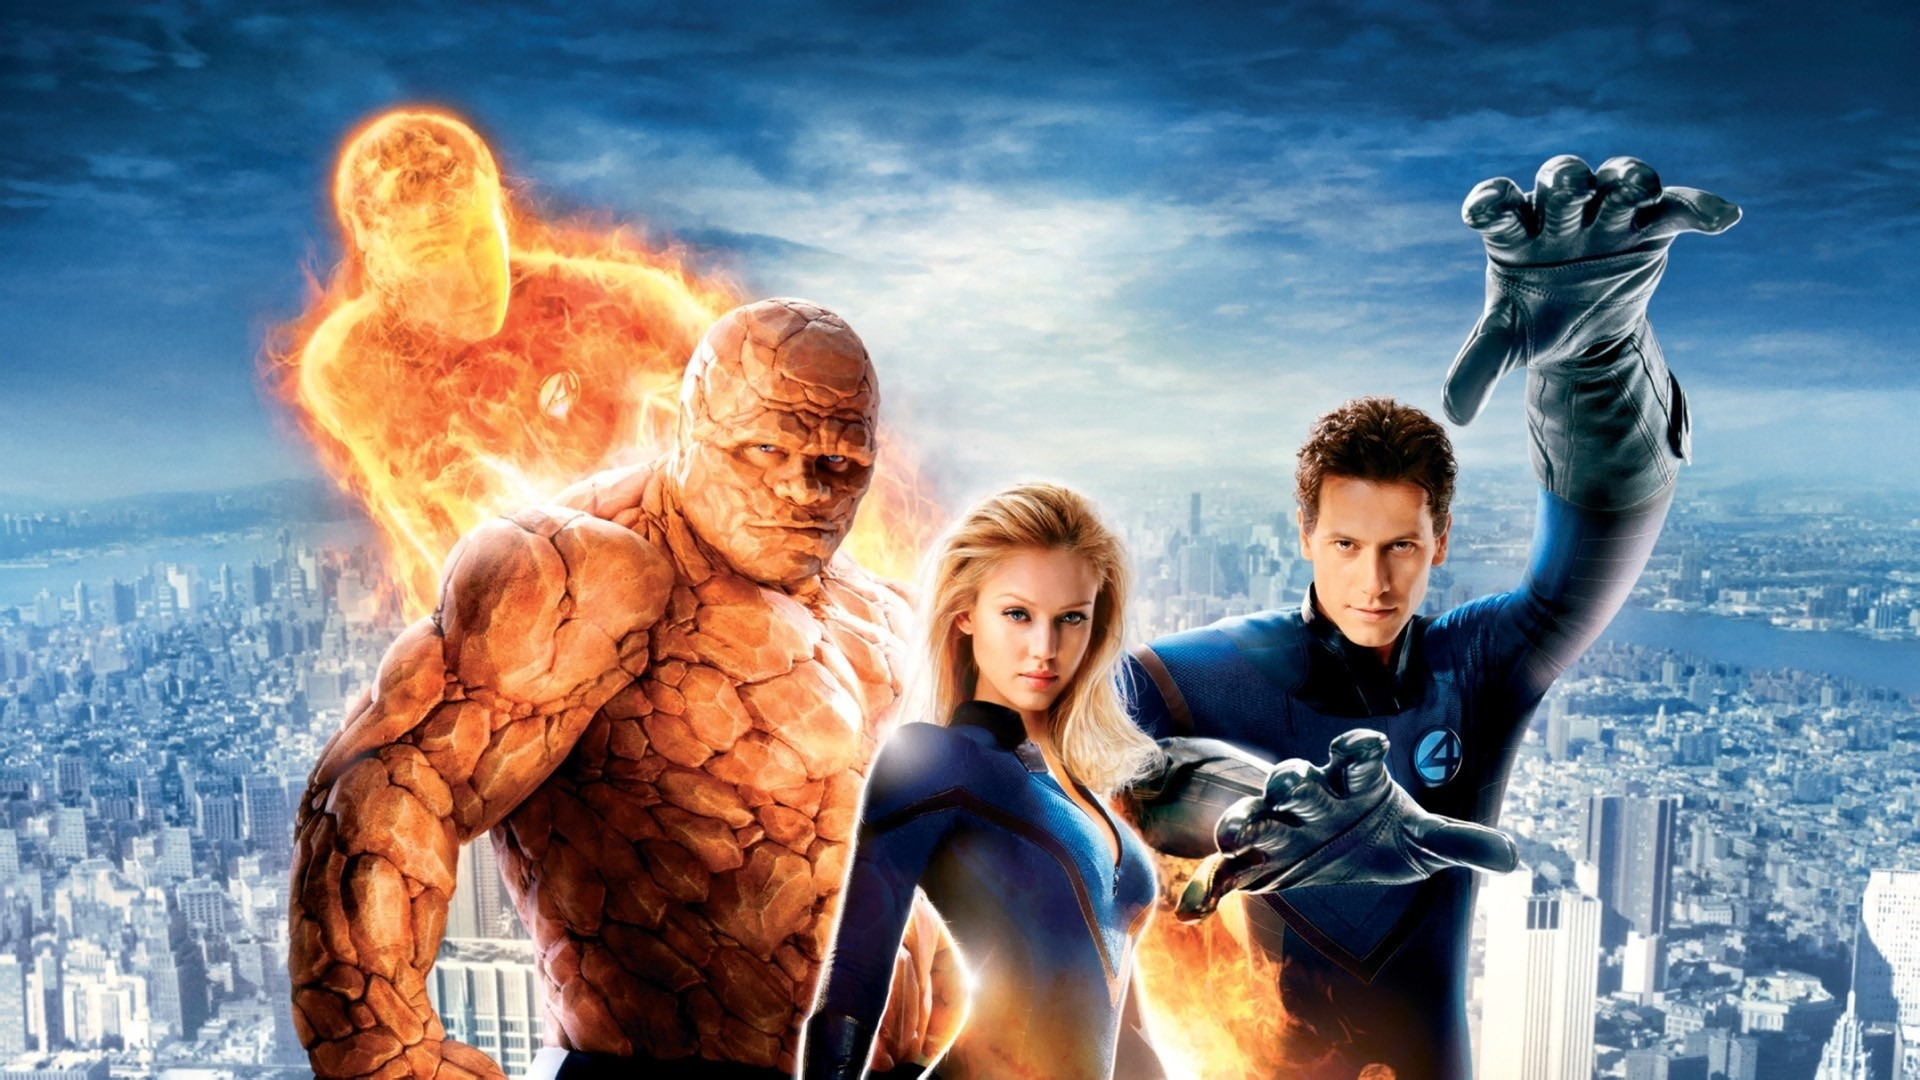 1920x1080 High Quality fantastic four backround, 420 kB - Van Little